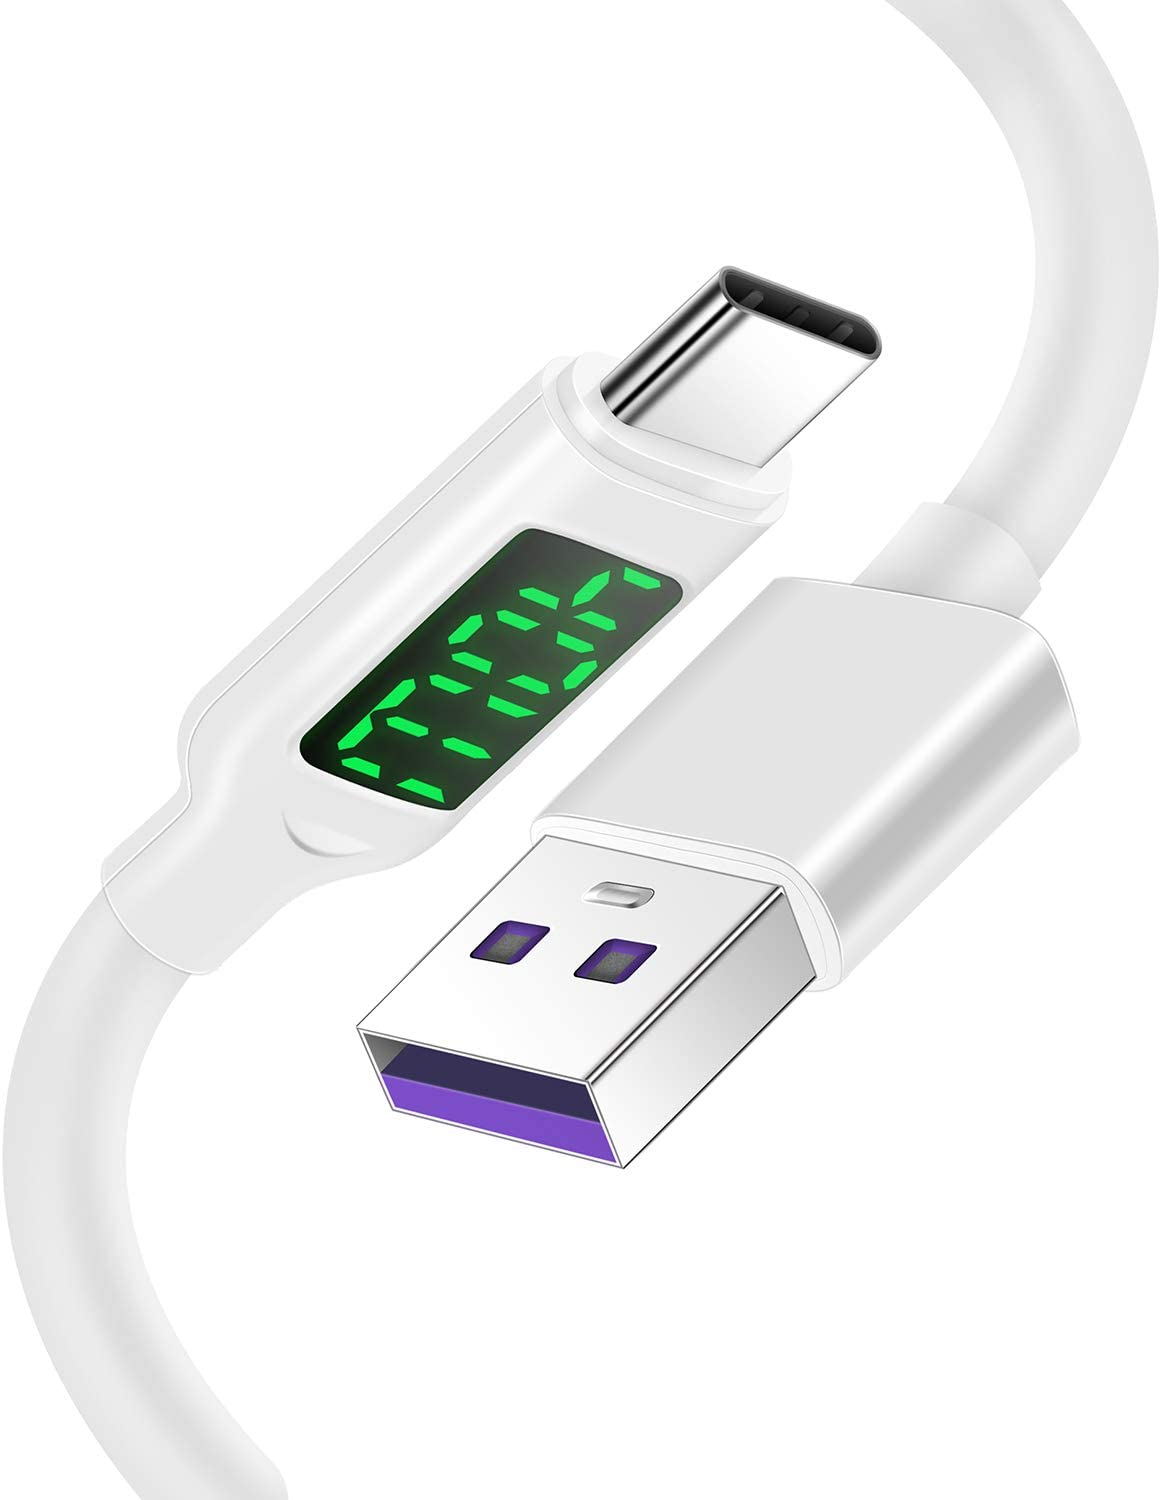 USB C Charger with LED Display, A to Type C Charging Cable Fast Charge for Samsung S20/S10/S9/S8